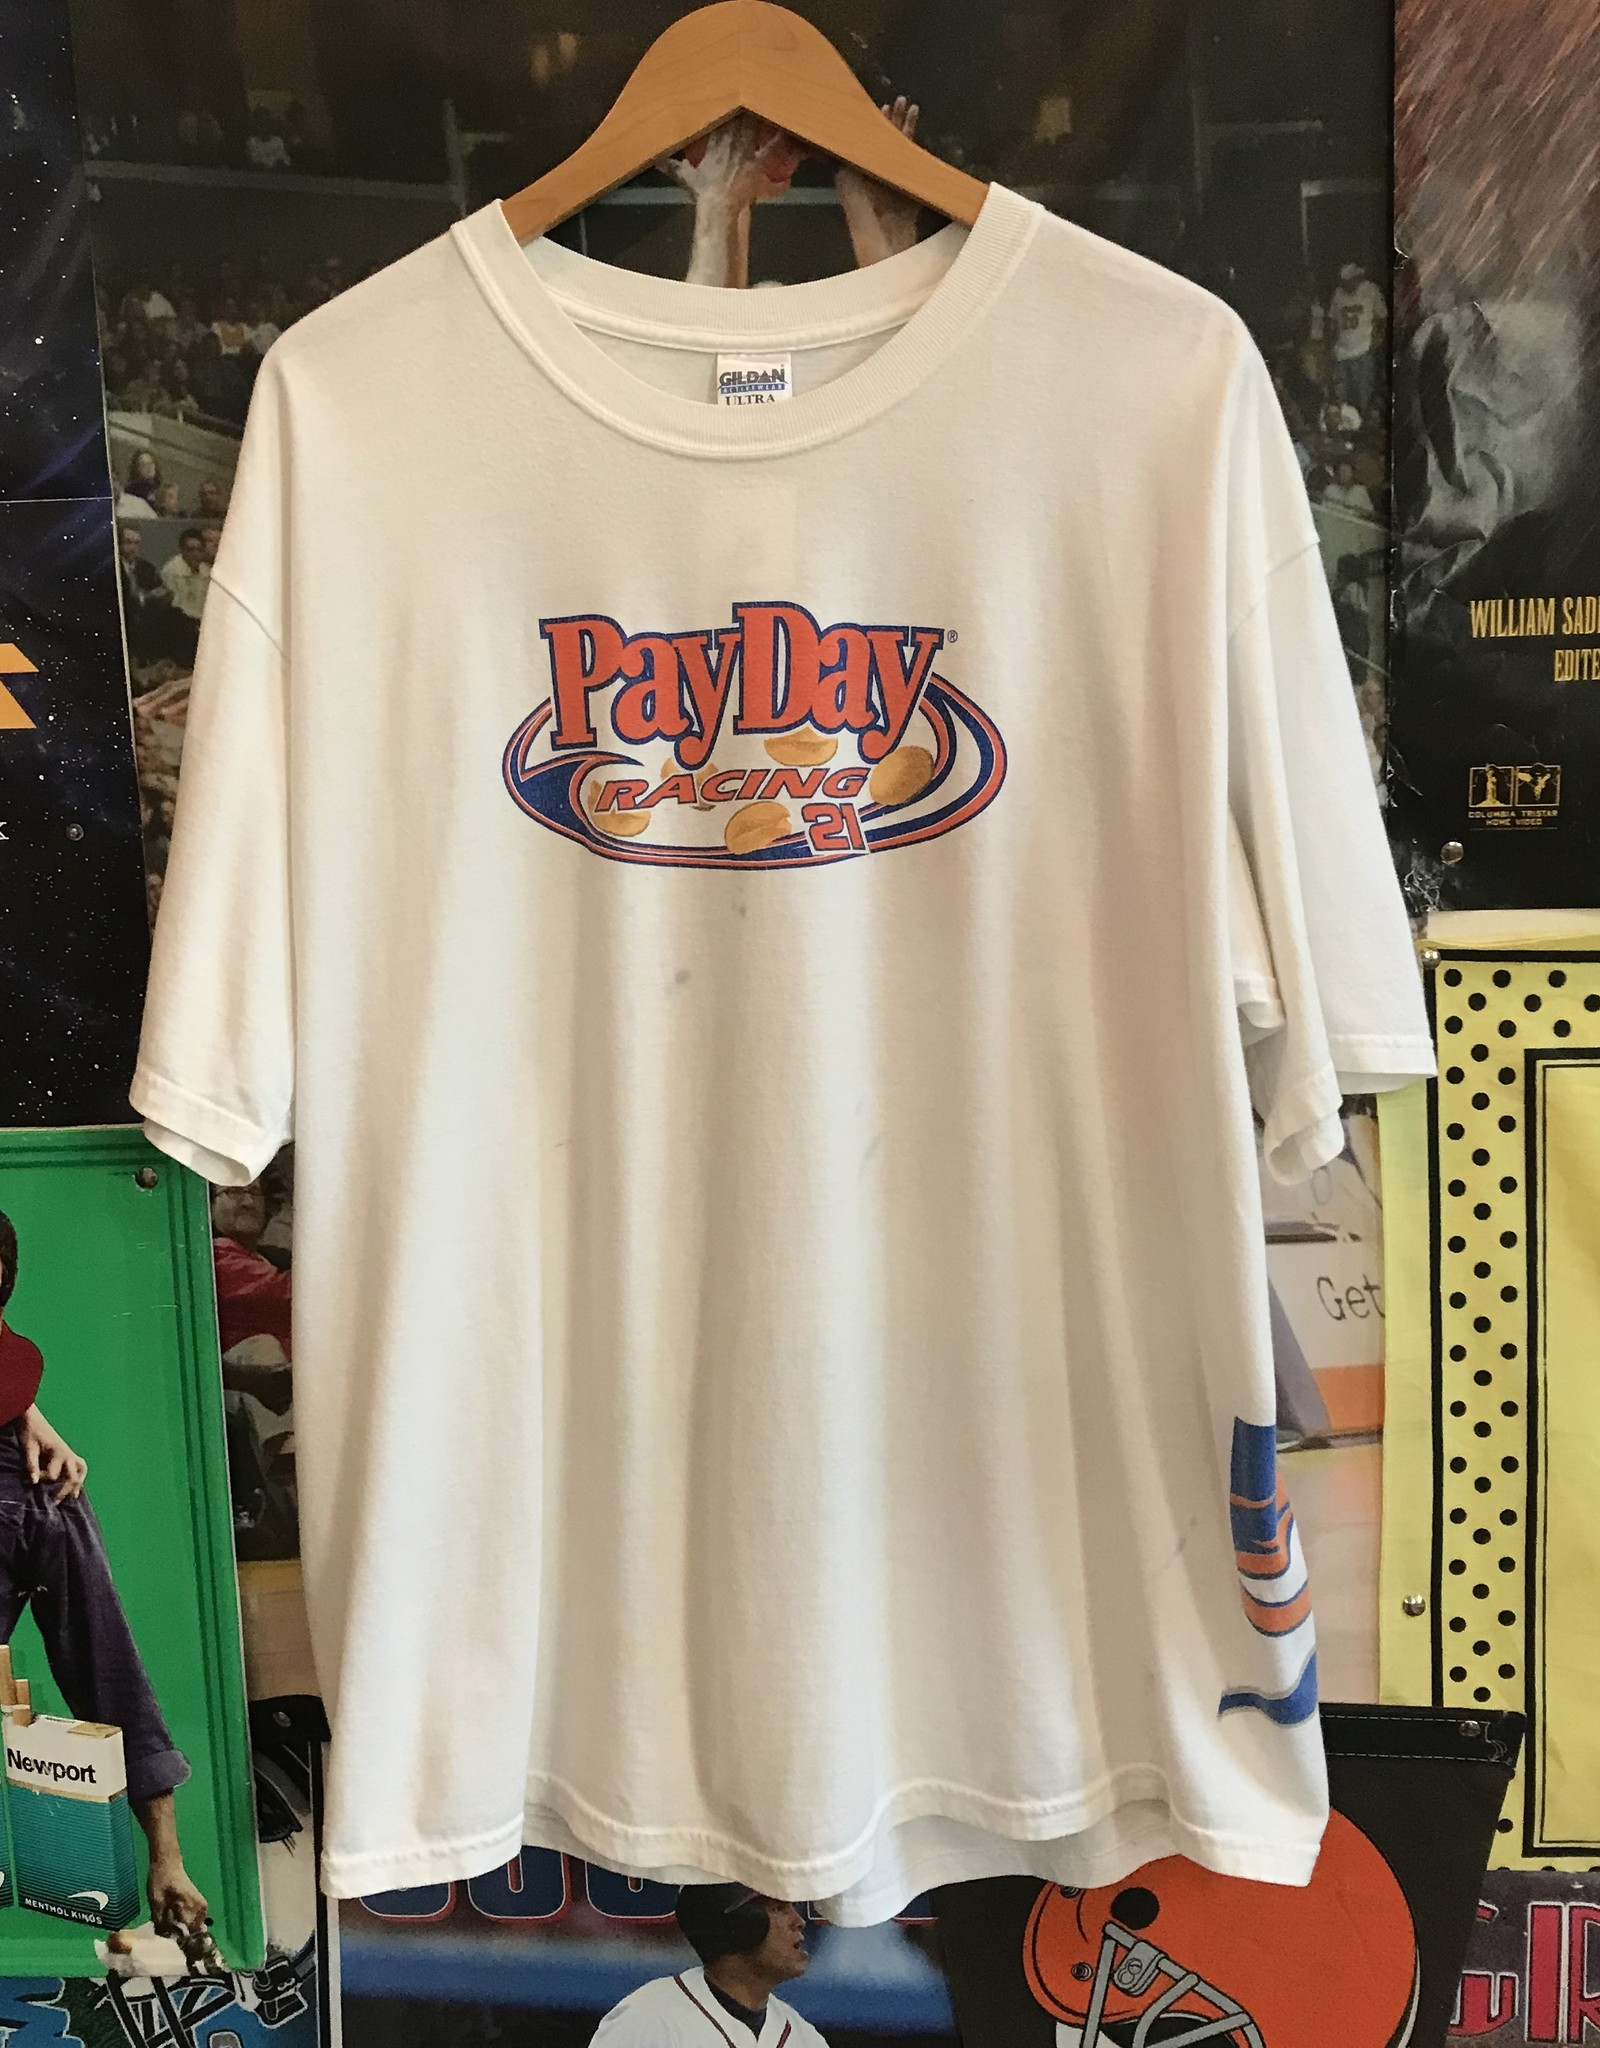 4200kevin harvick payday tee white sz XL